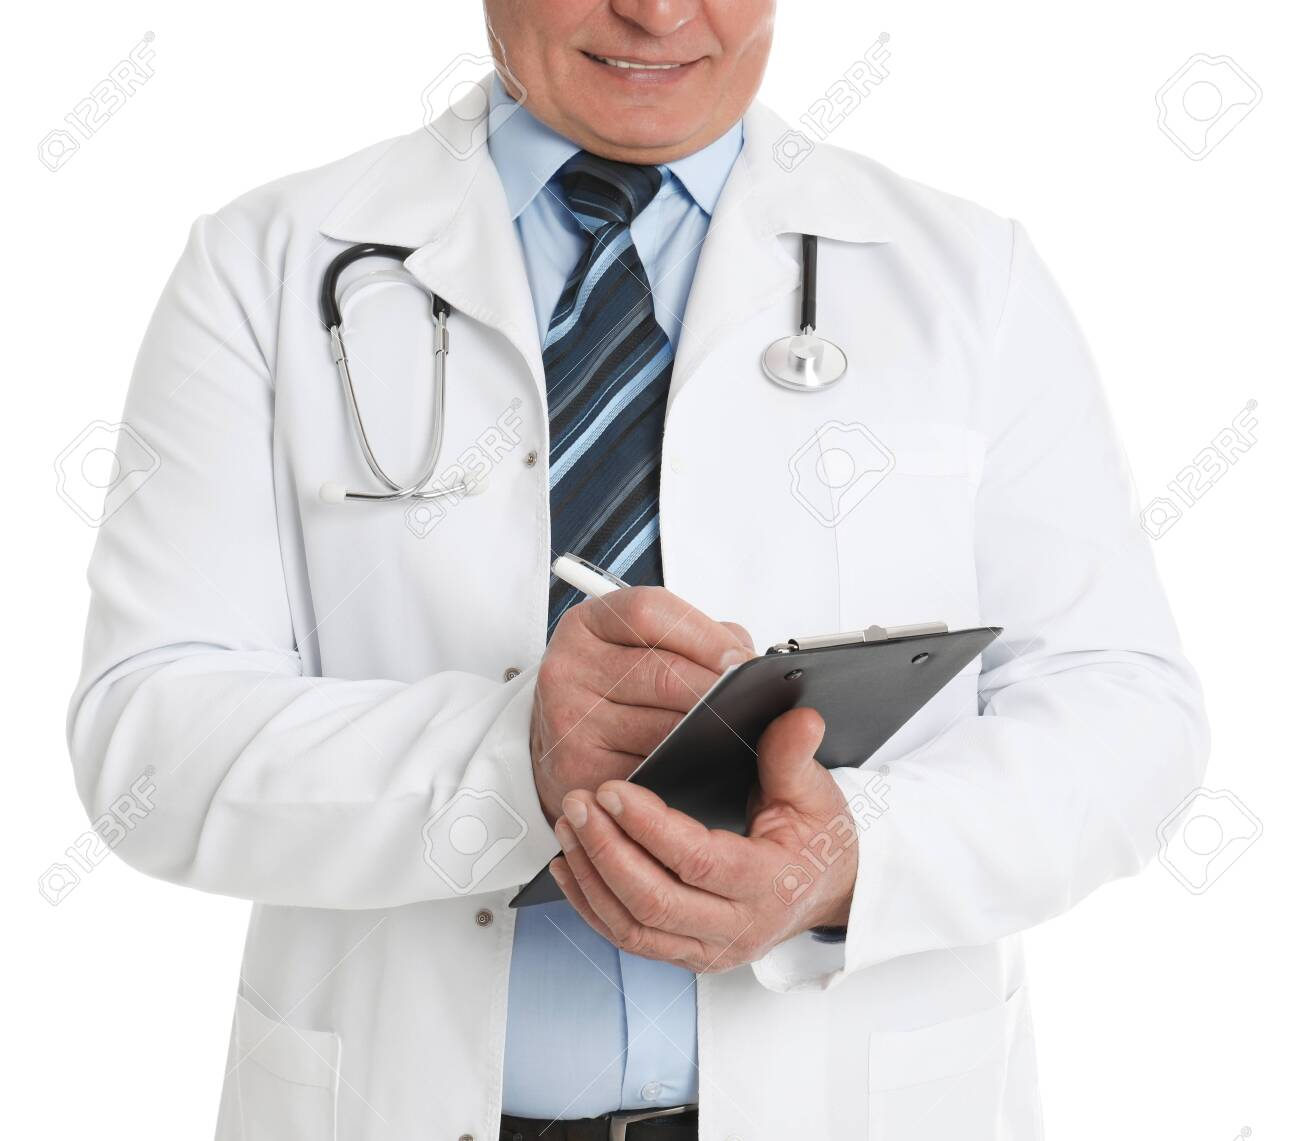 Senior doctor with clipboard on white background, closeup - 141391473